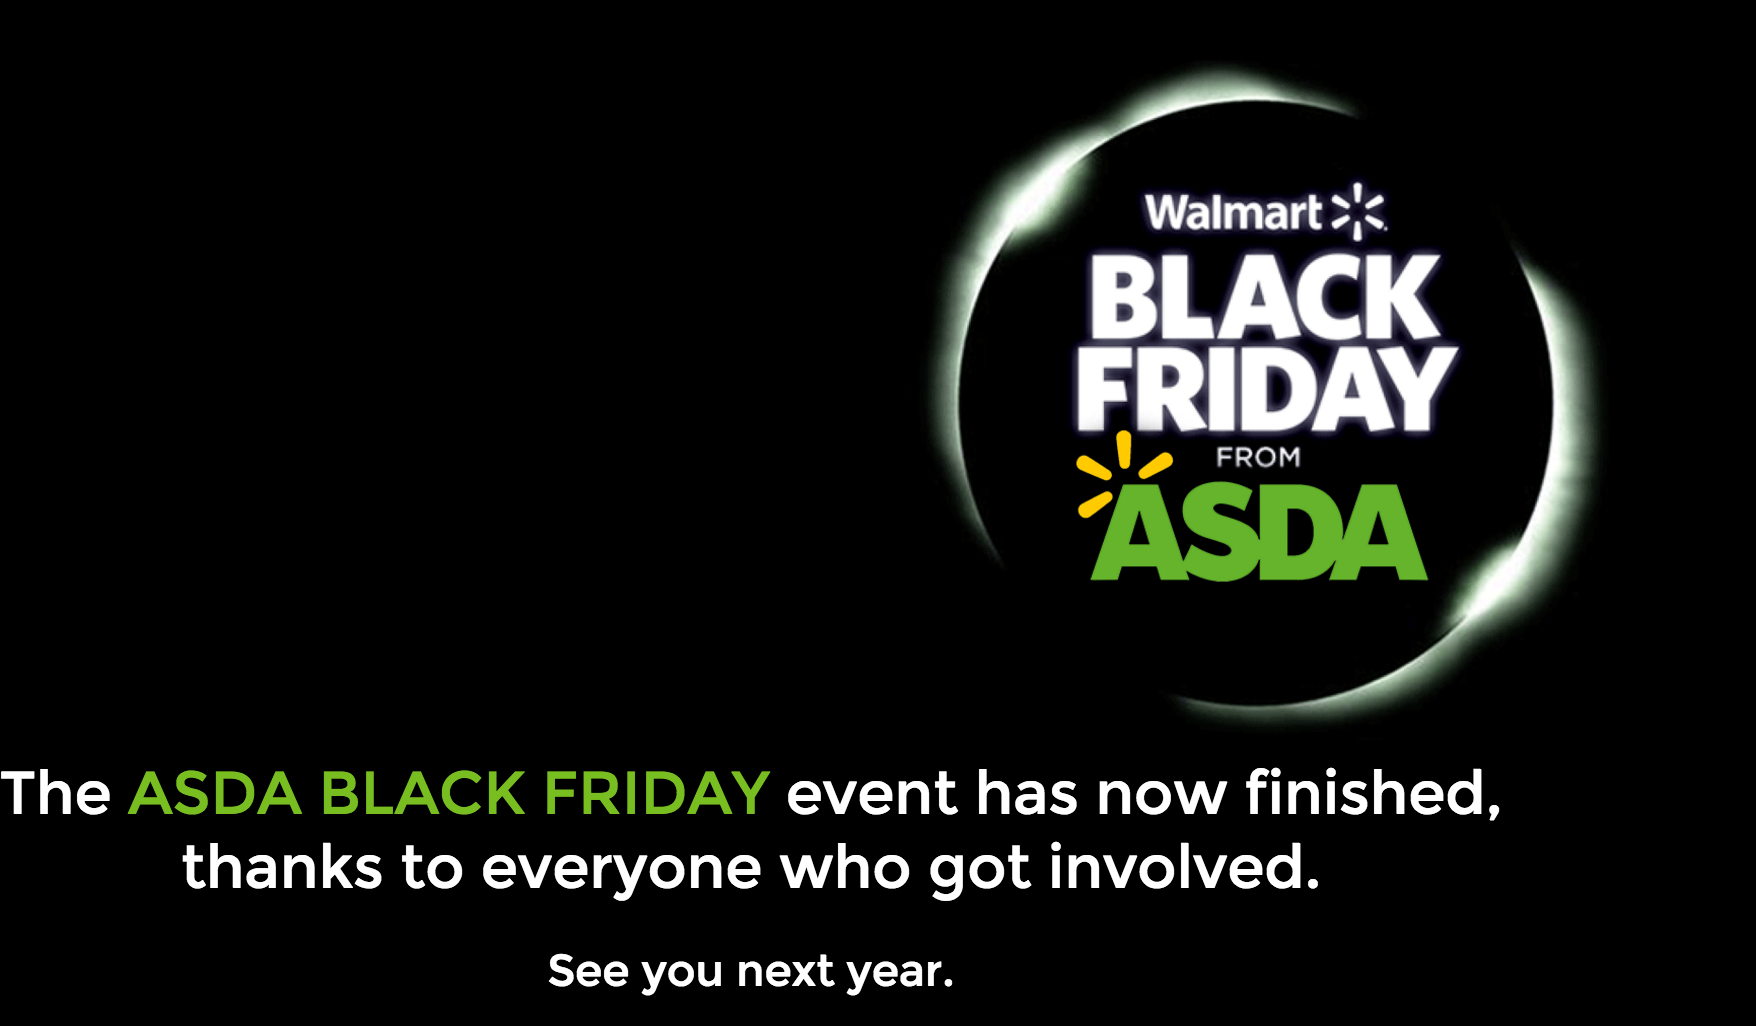 asda black friday page